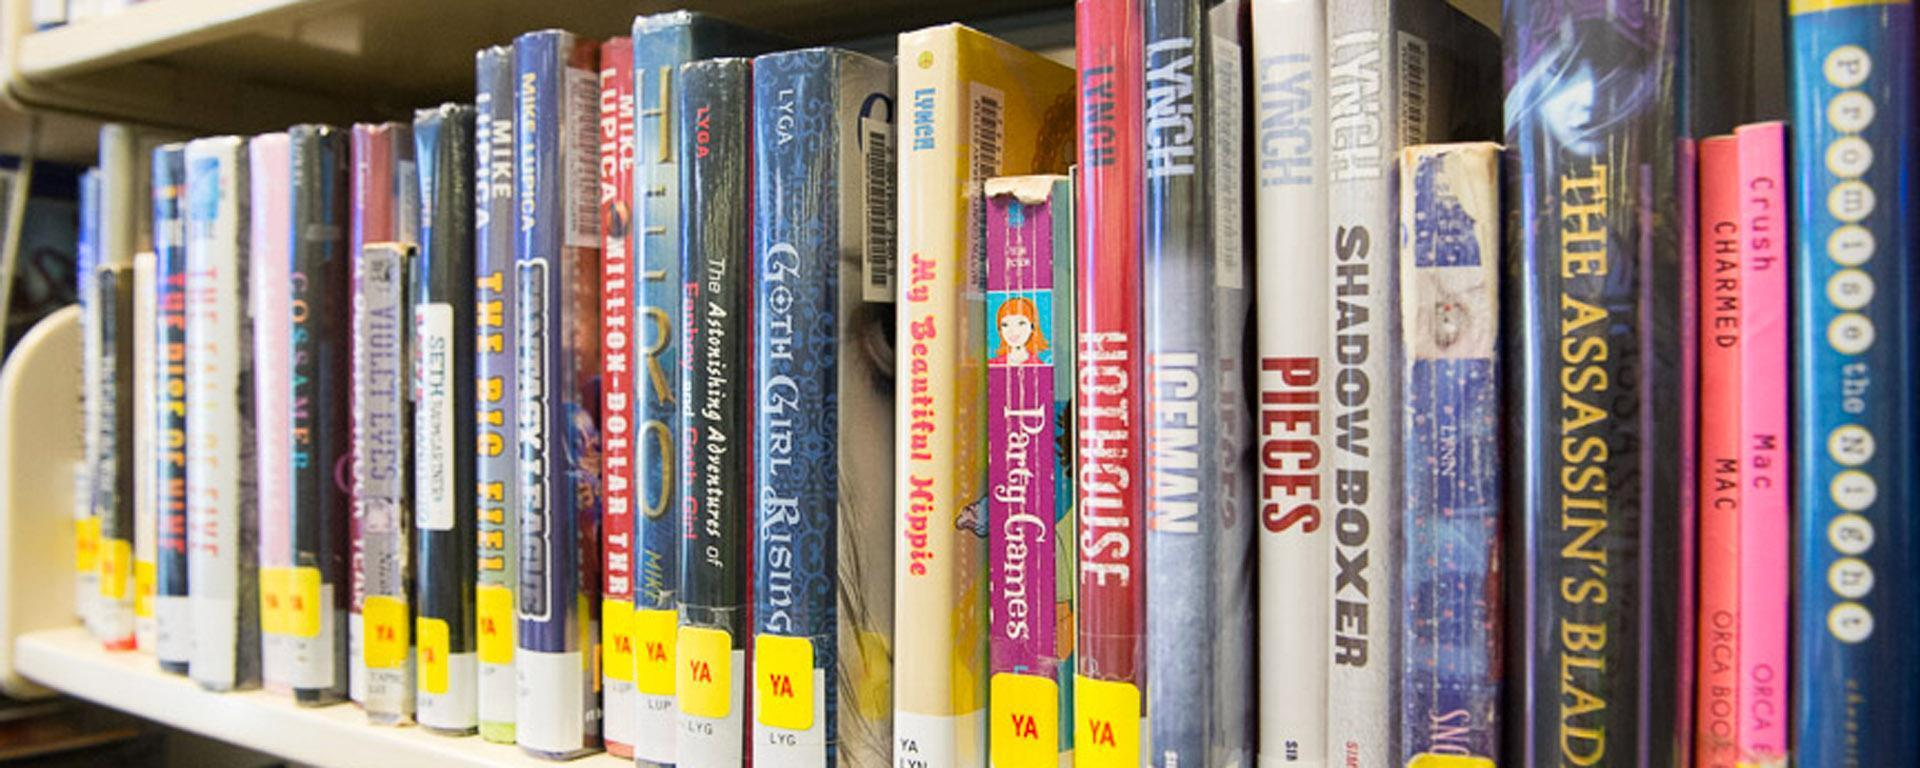 Image of young adult books on the shelf